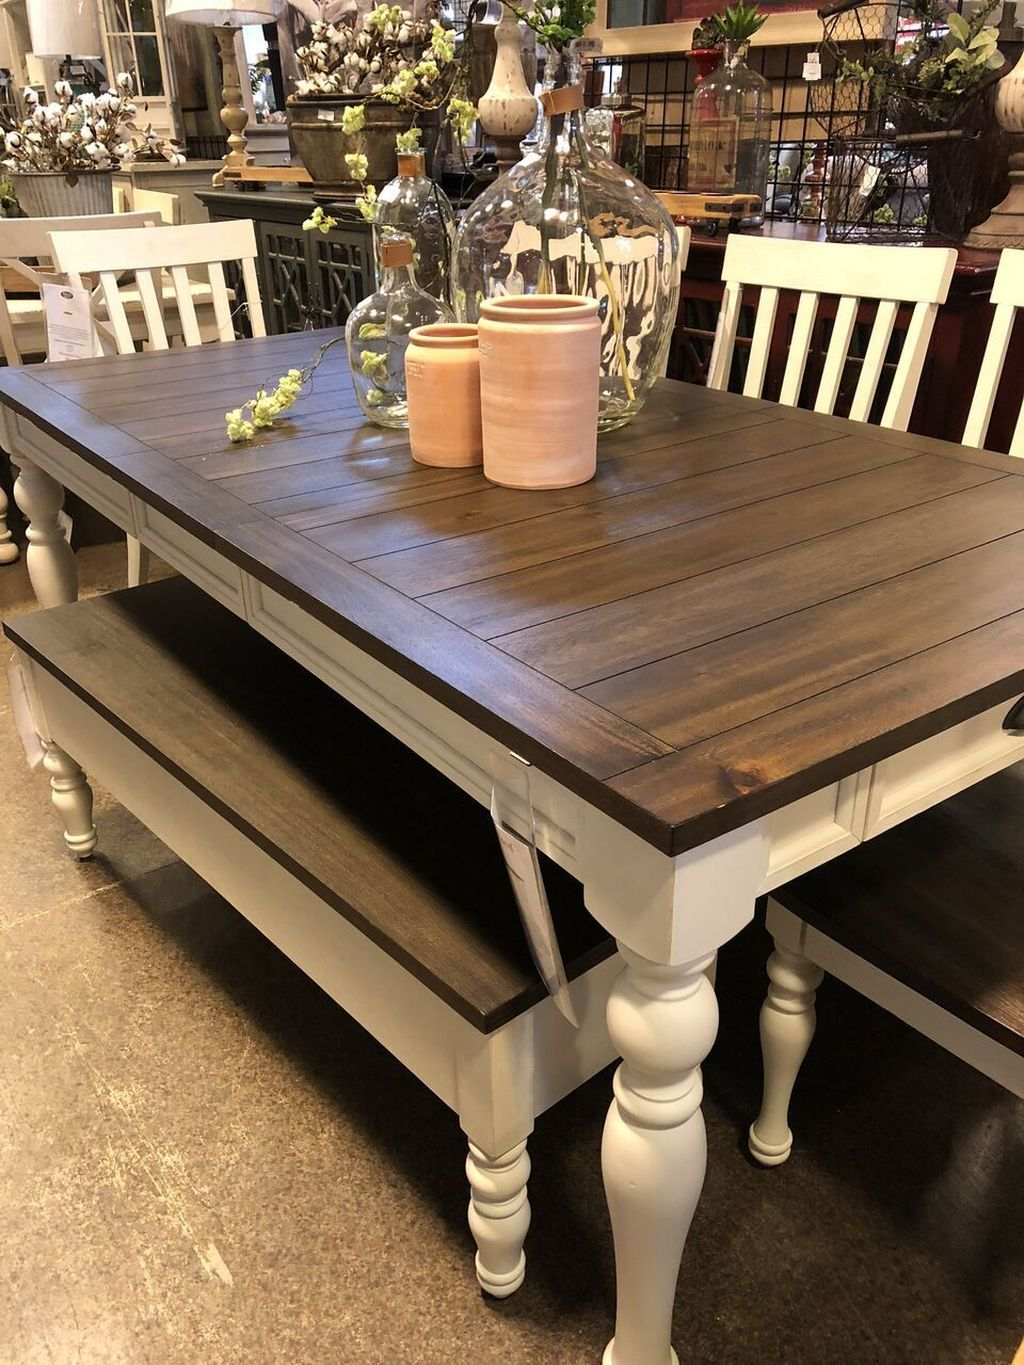 34 the best farmhouse table design ideas perfect for 2020